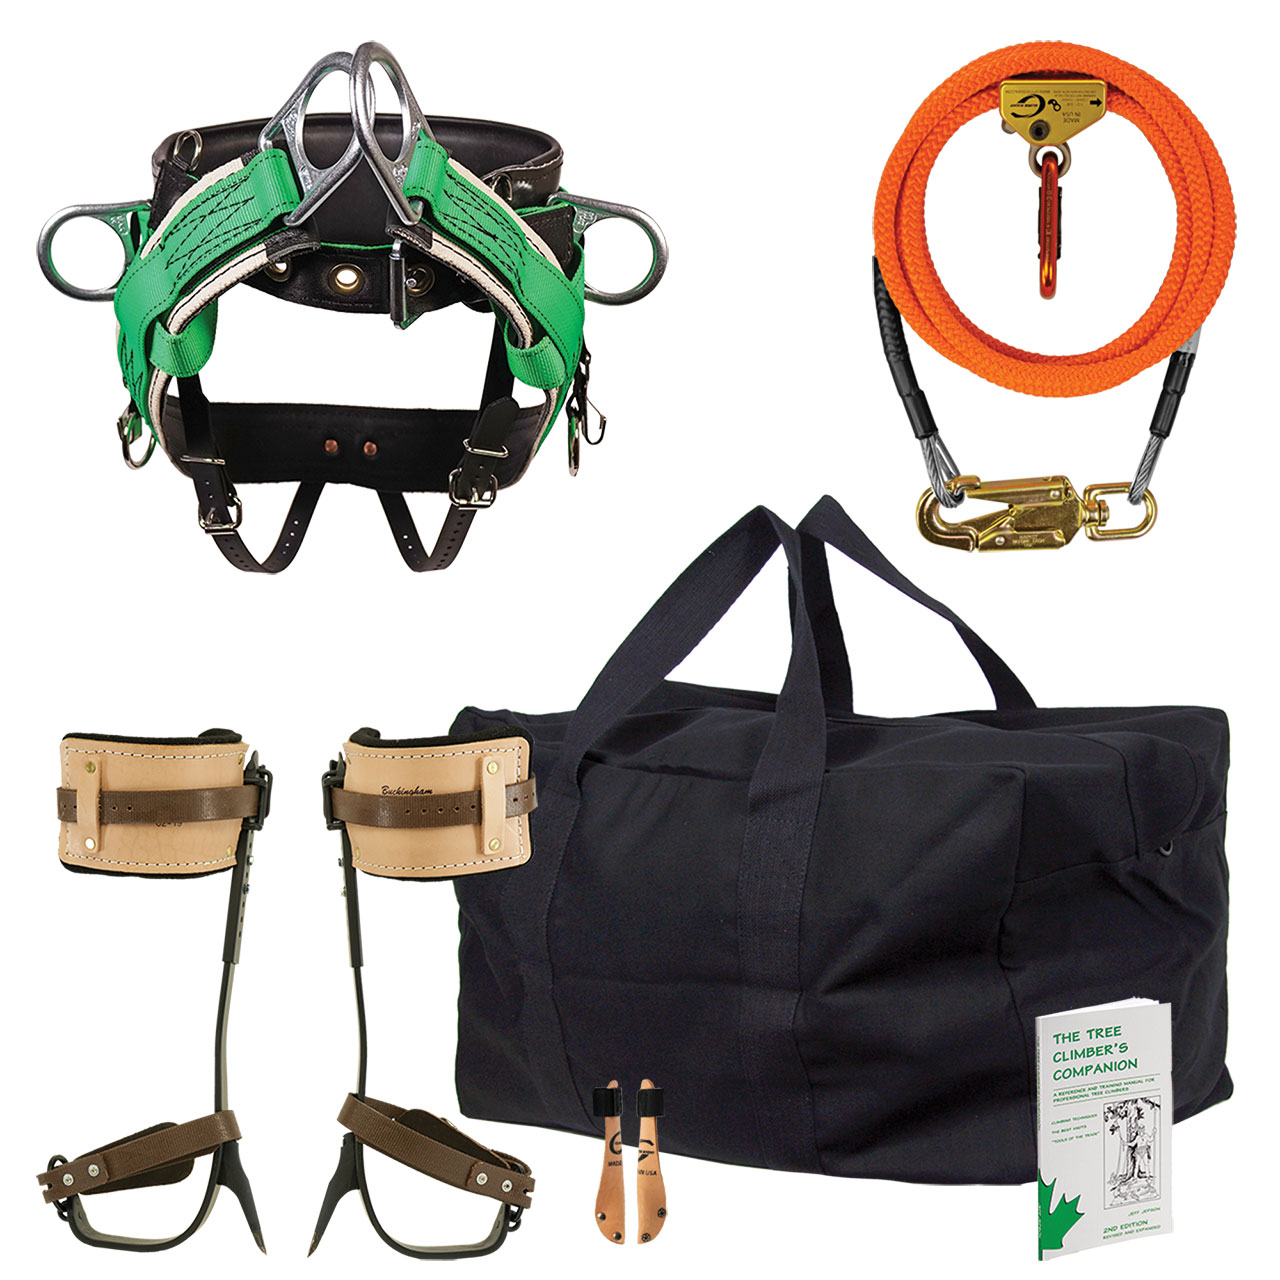 WesSpur's Beginner's Climber Kit - No Rope